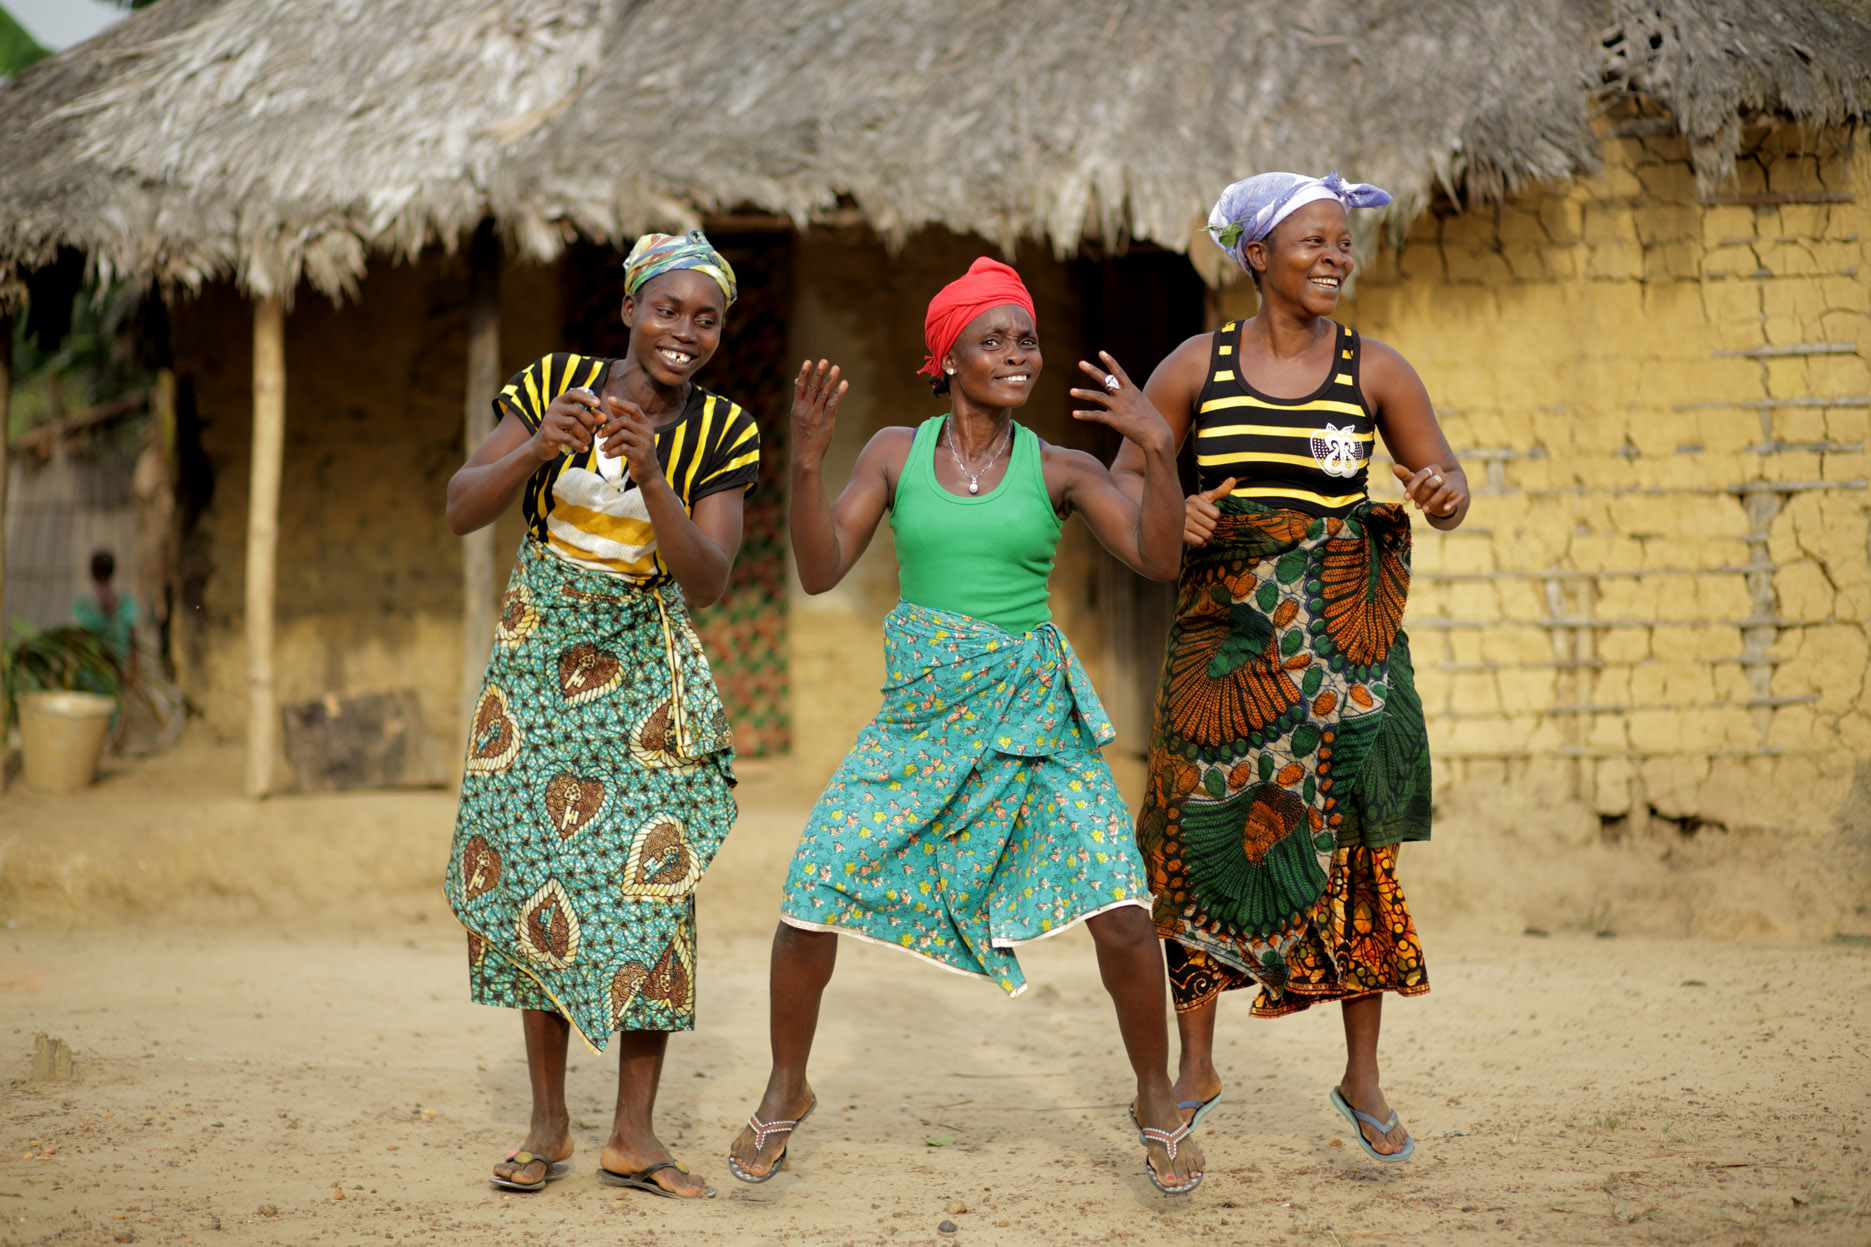 Women Dancing_rights.jpg